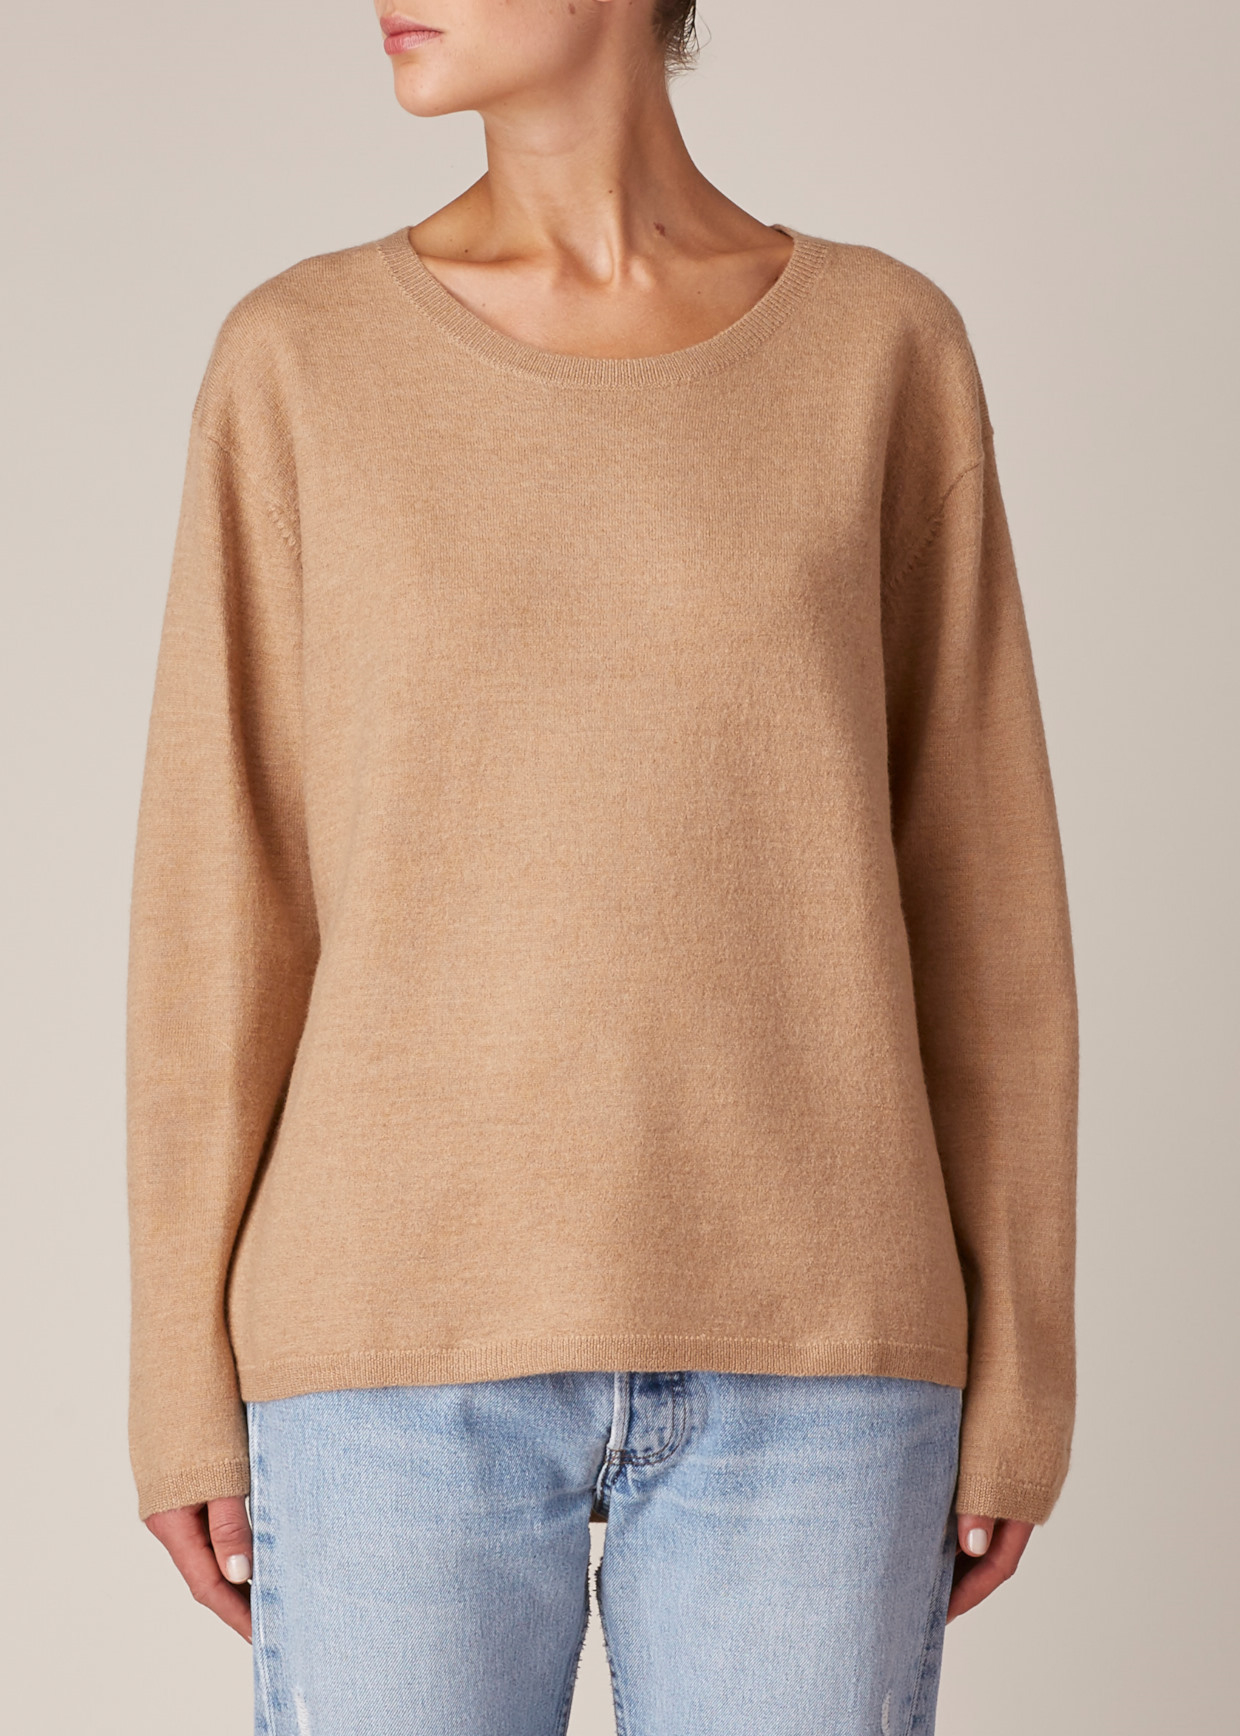 Won hundred Tan Coral Sweater in Brown | Lyst